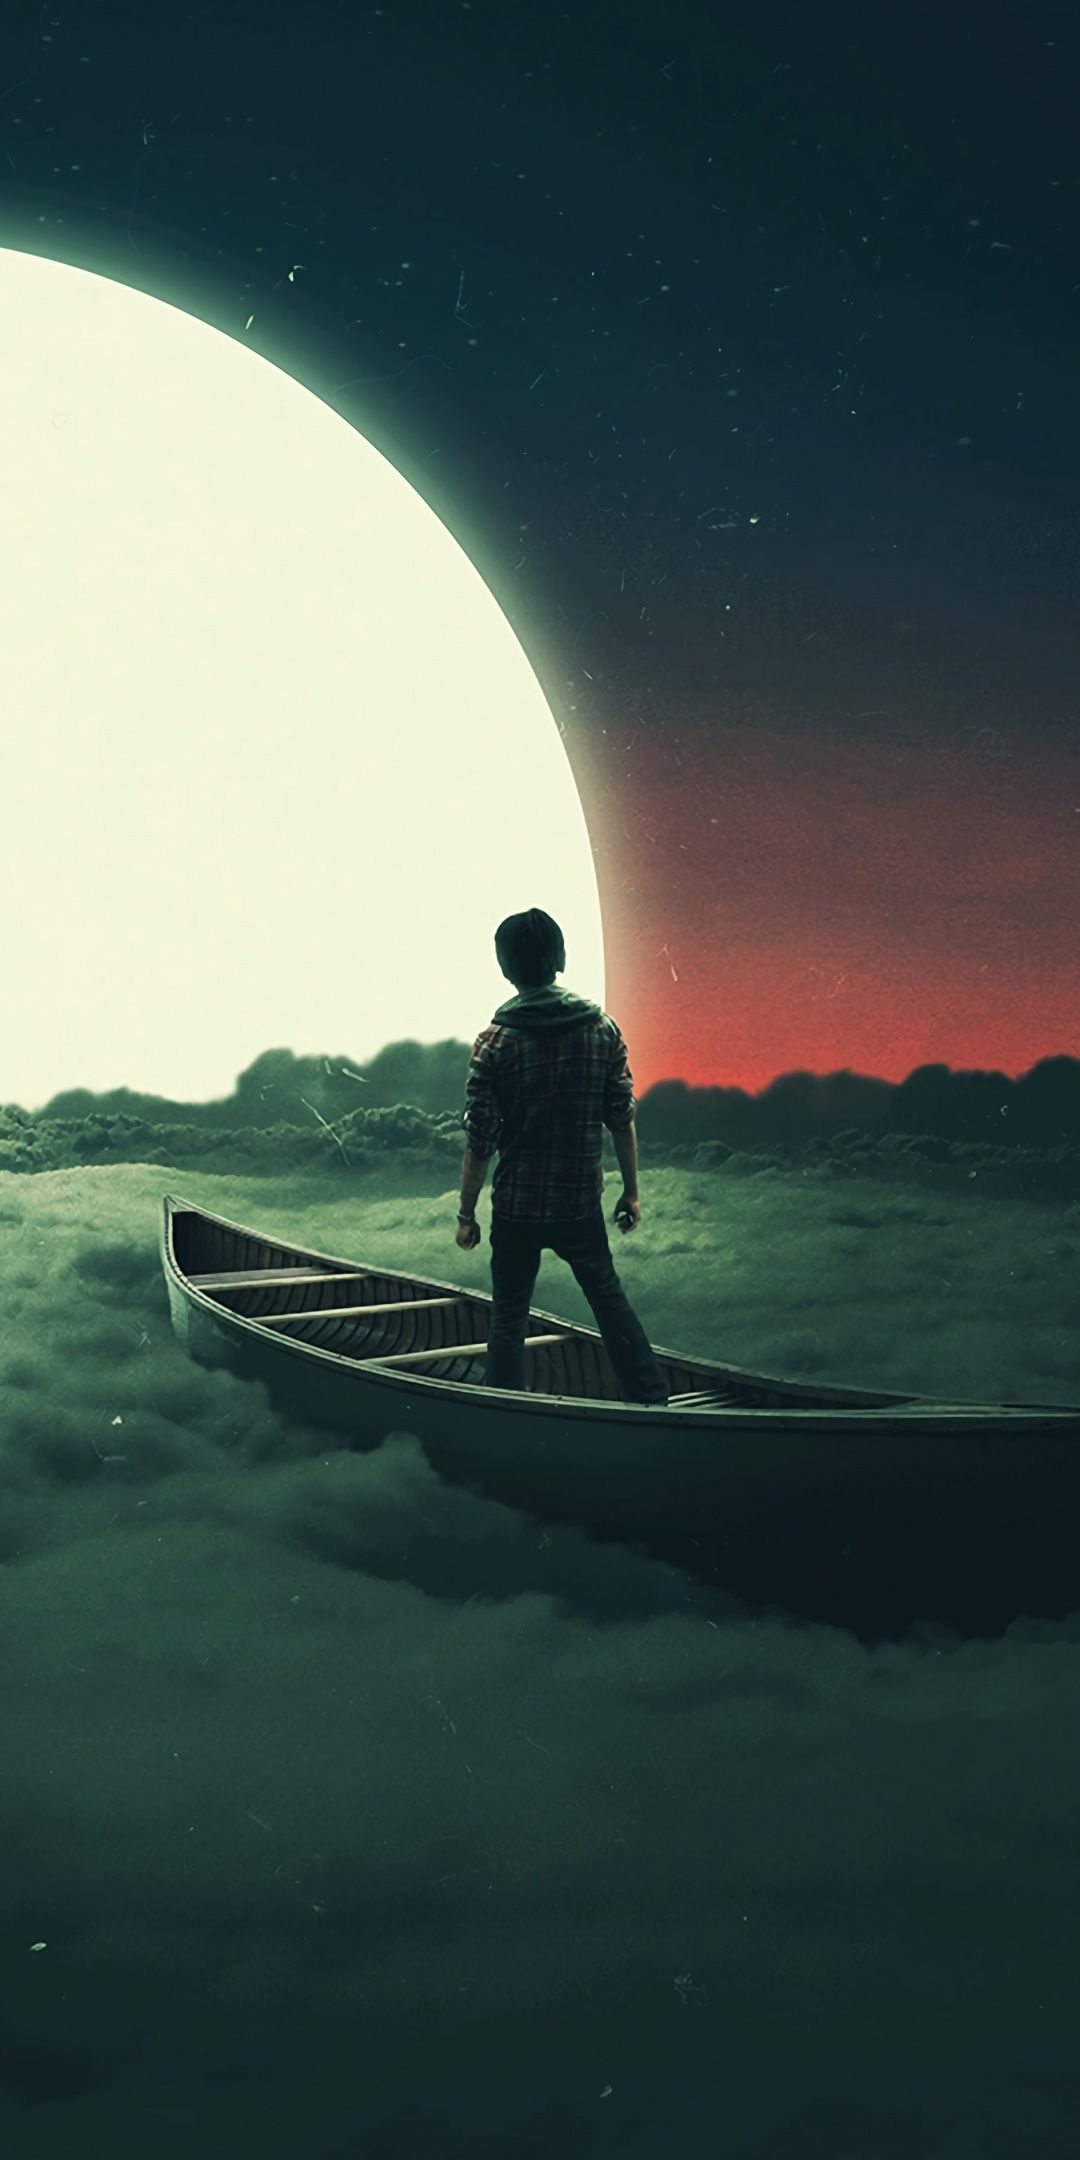 Sail To The Moon Clouds Boat Art 1080x2160 Wallpaper Scenery Wallpaper Beautiful Wallpapers Backgrounds Surreal Art